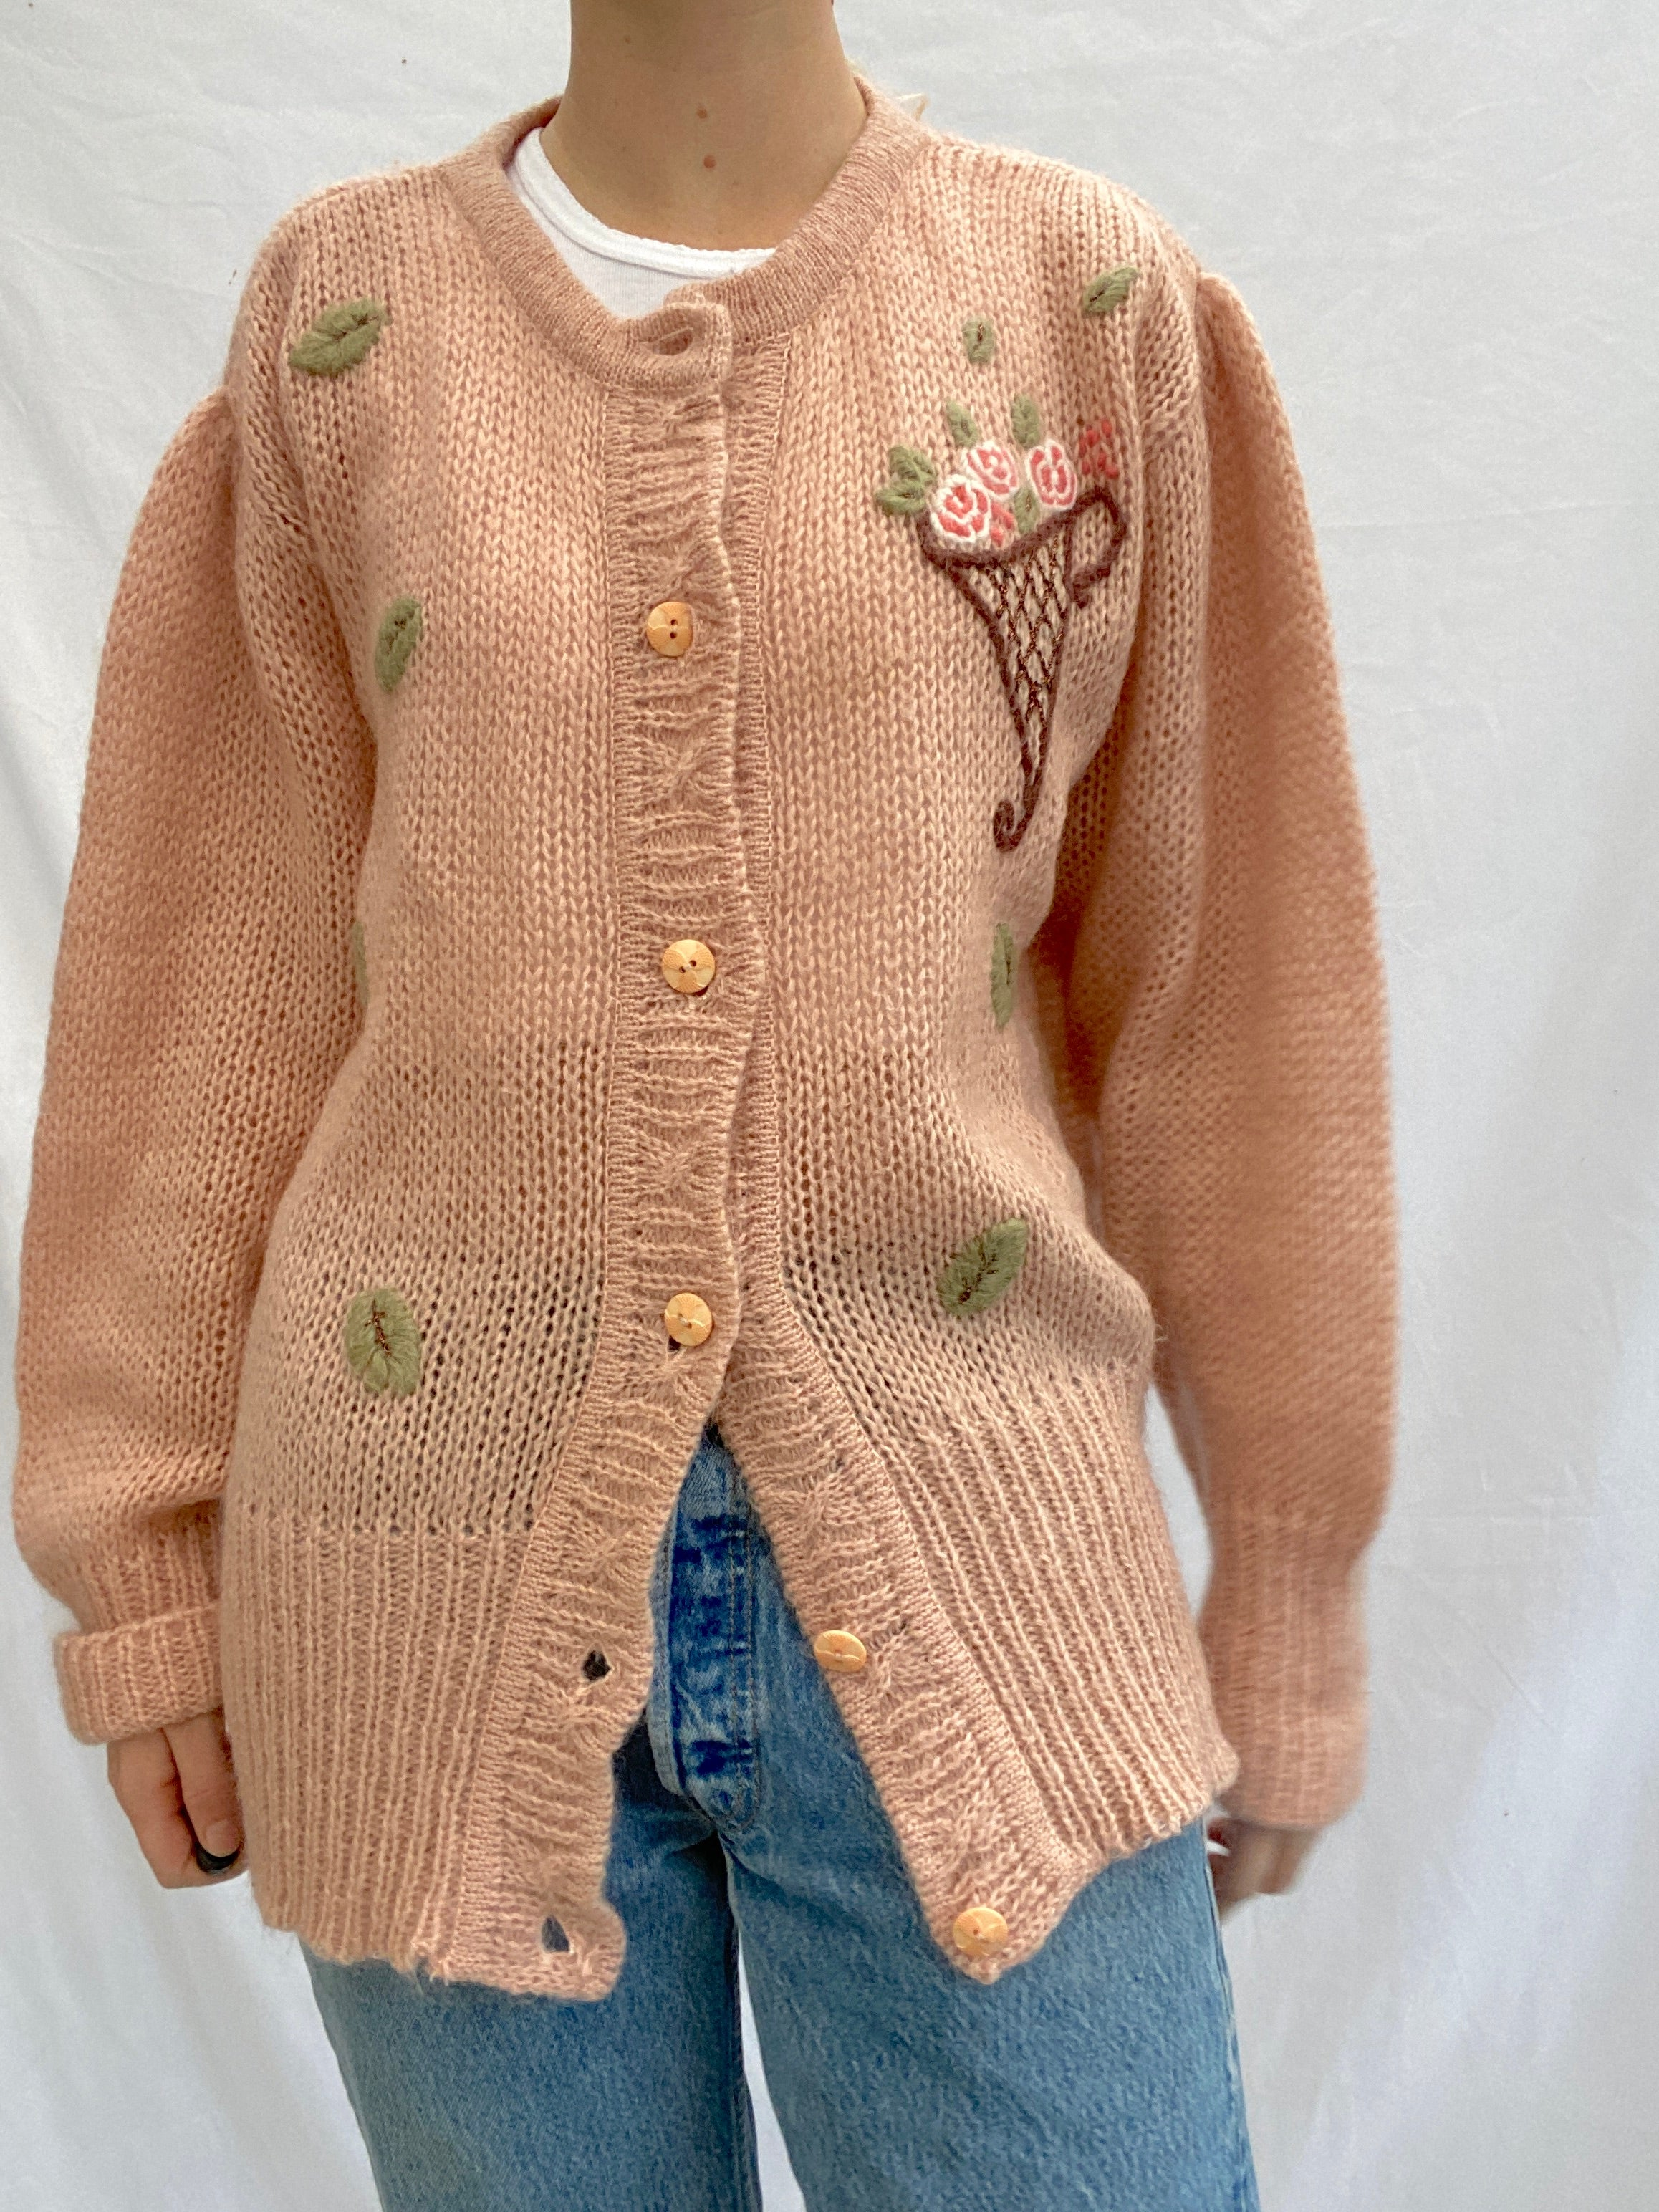 Mauve Pink Knit Cardigan With Bouquet Imagery